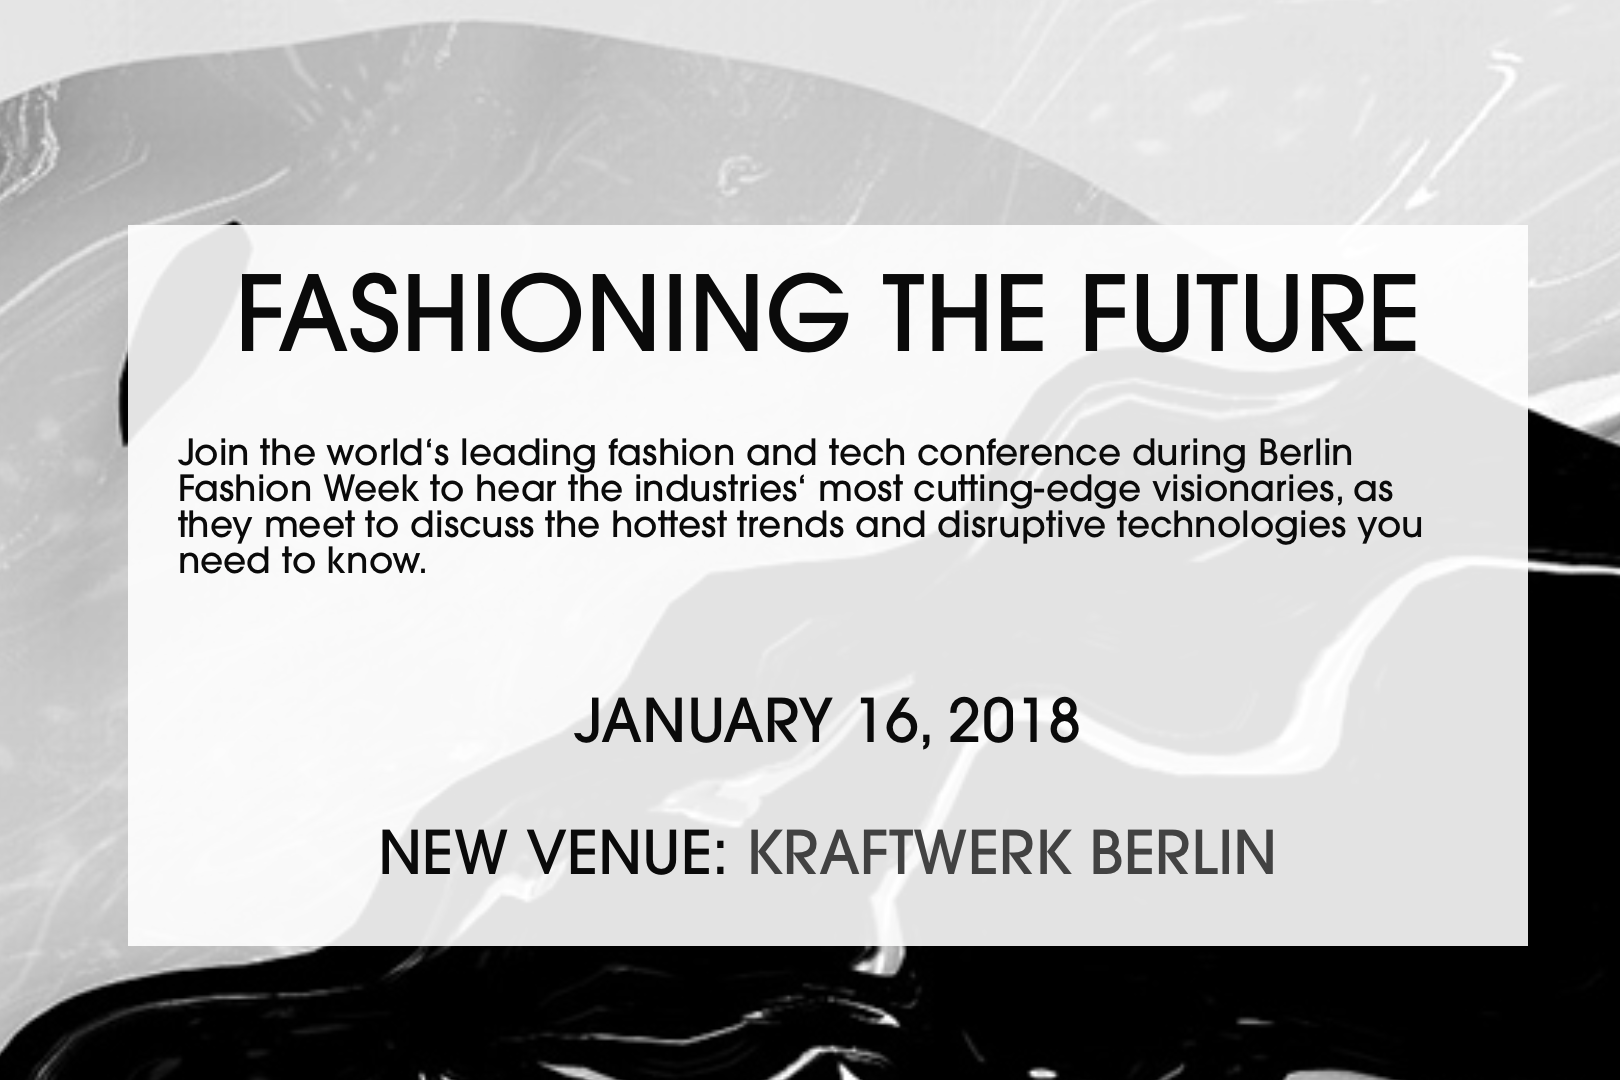 Fashiontech messe frankfurt wird partner fashiontoday for Messe frankfurt januar 2017